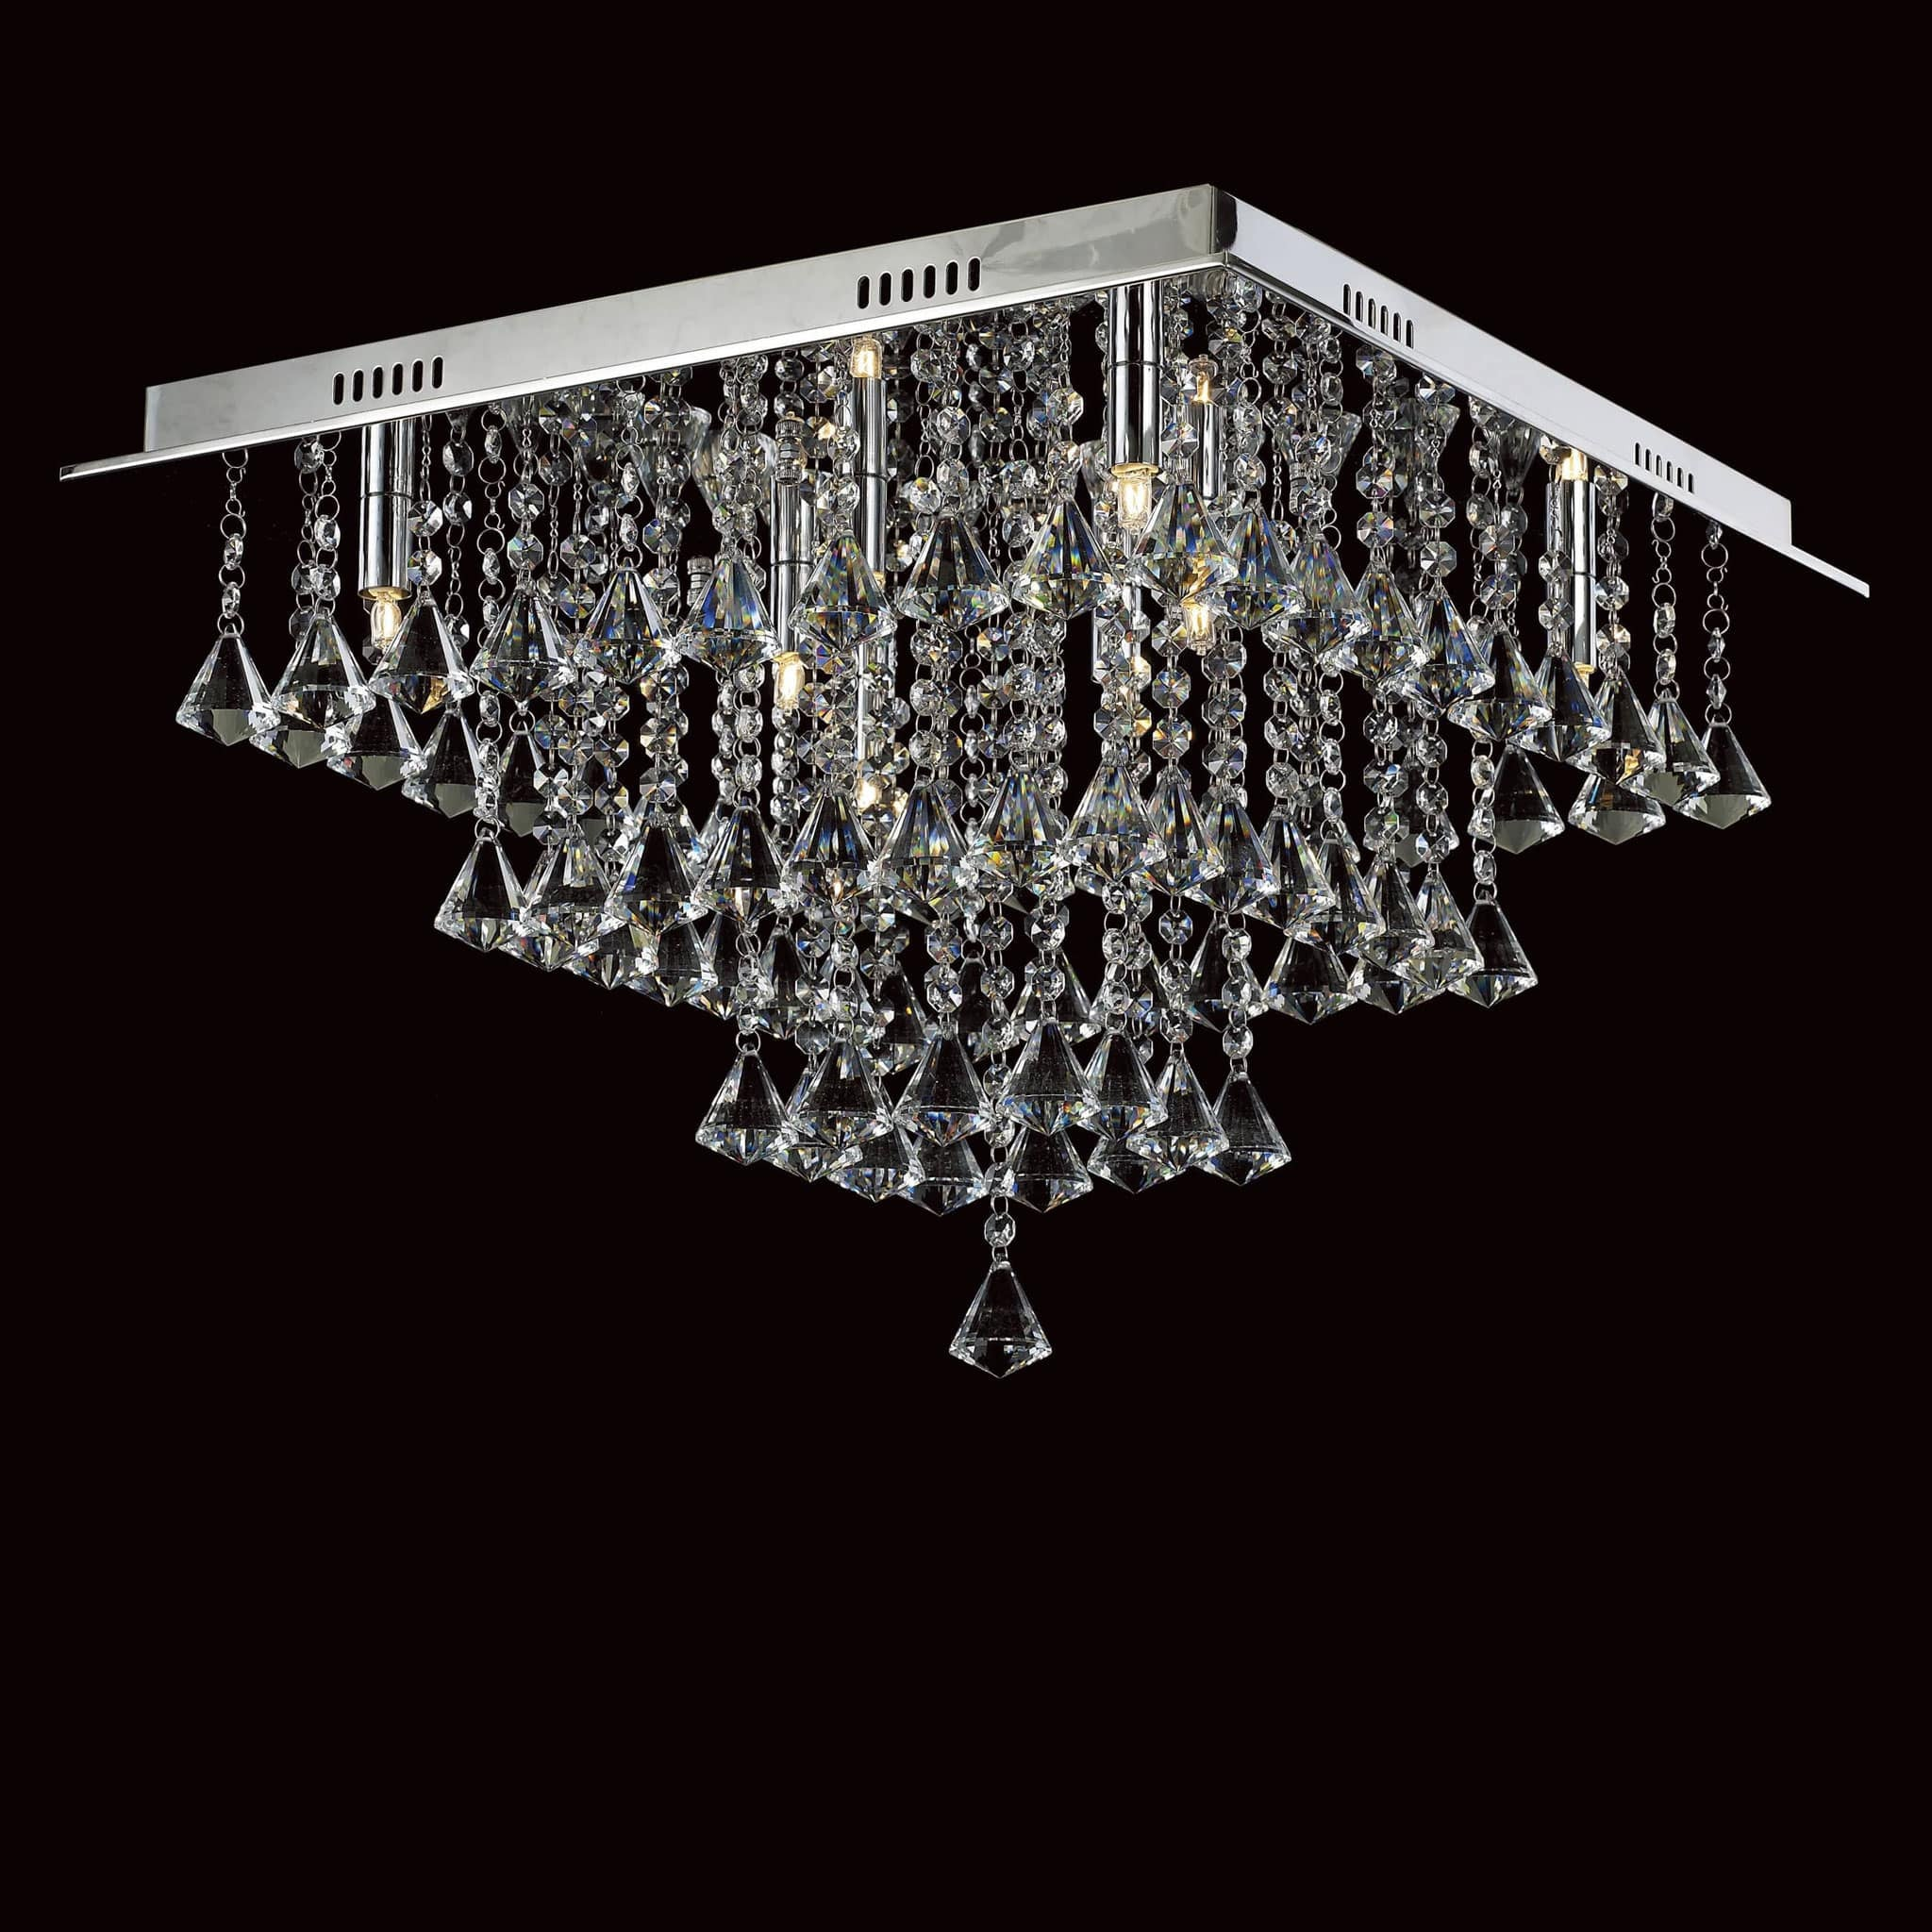 Flush Chandelier Impex parma square 8 light crystal flush chandelier chandelier shack impex parma square 8 light crystal flush chandelier cfh30117108plch audiocablefo